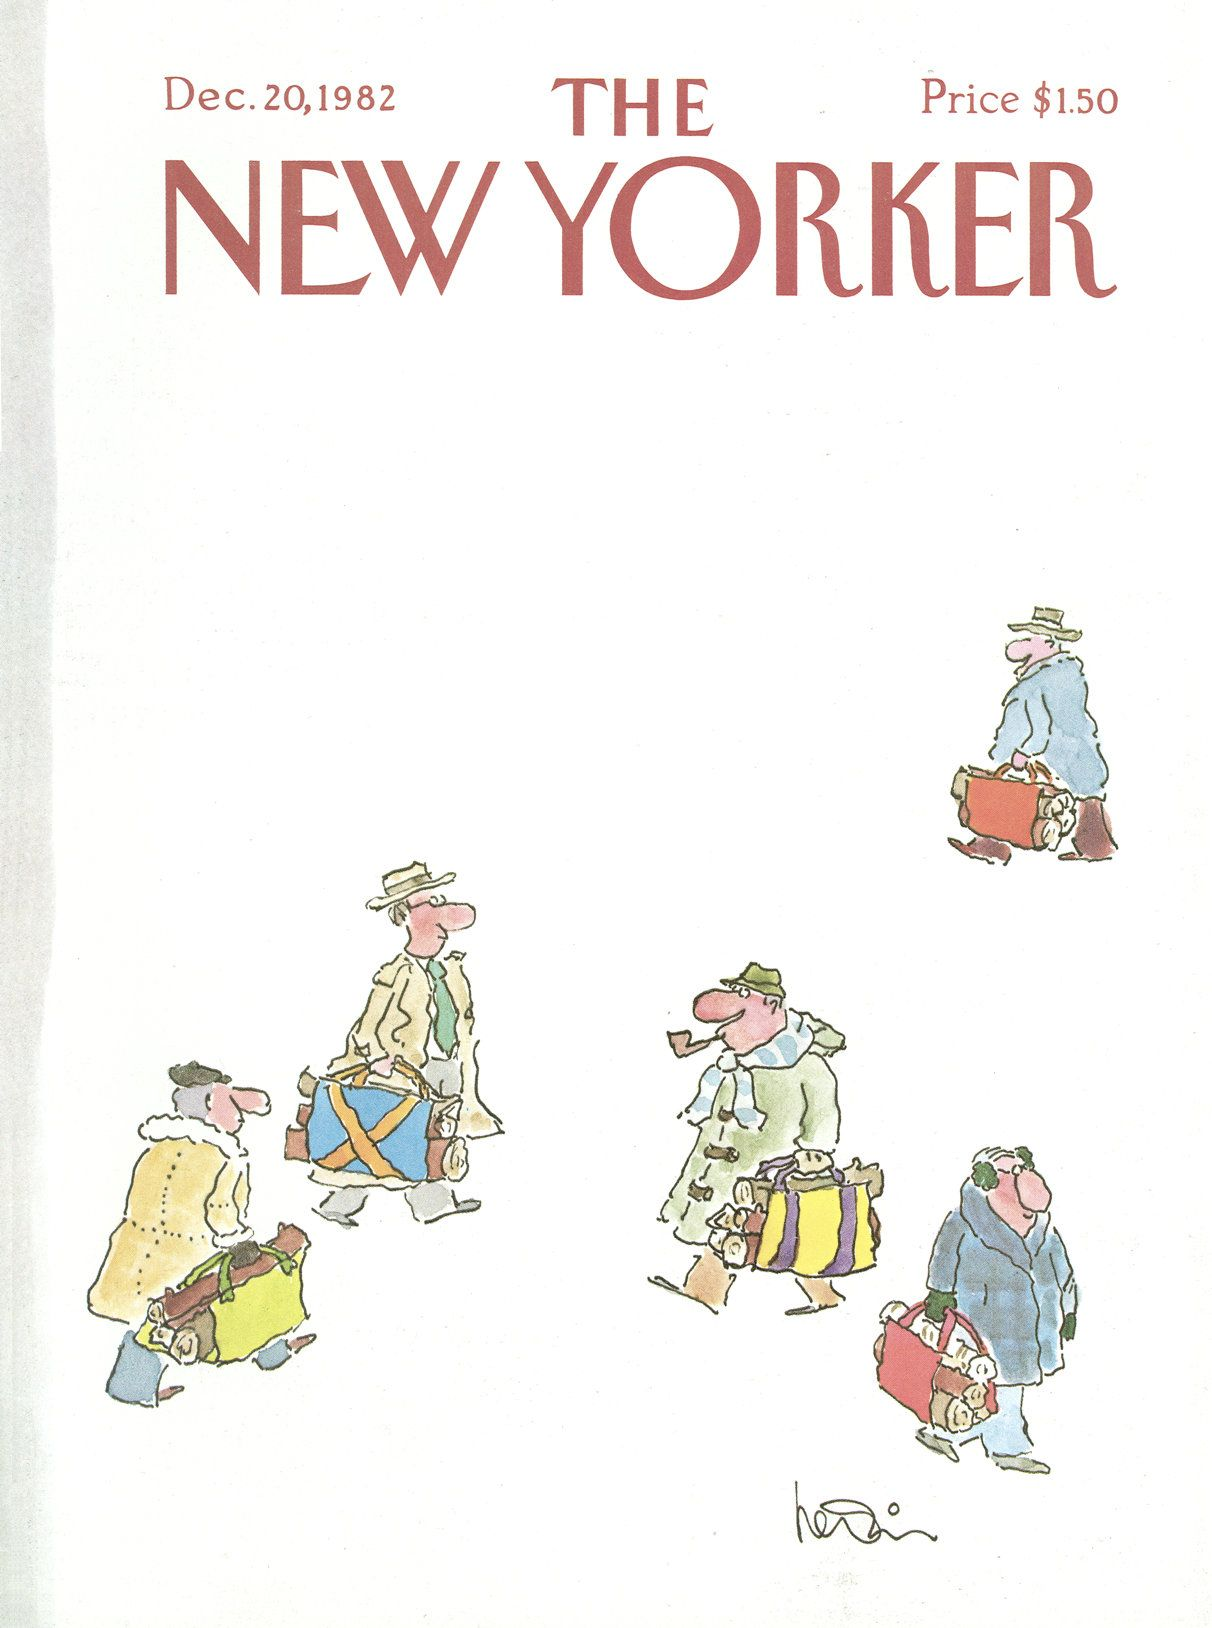 The New Yorker - Monday, December 20, 1982 - Issue # 3018 - Vol. 58 - N° 44 - Cover by : Arnie Levin